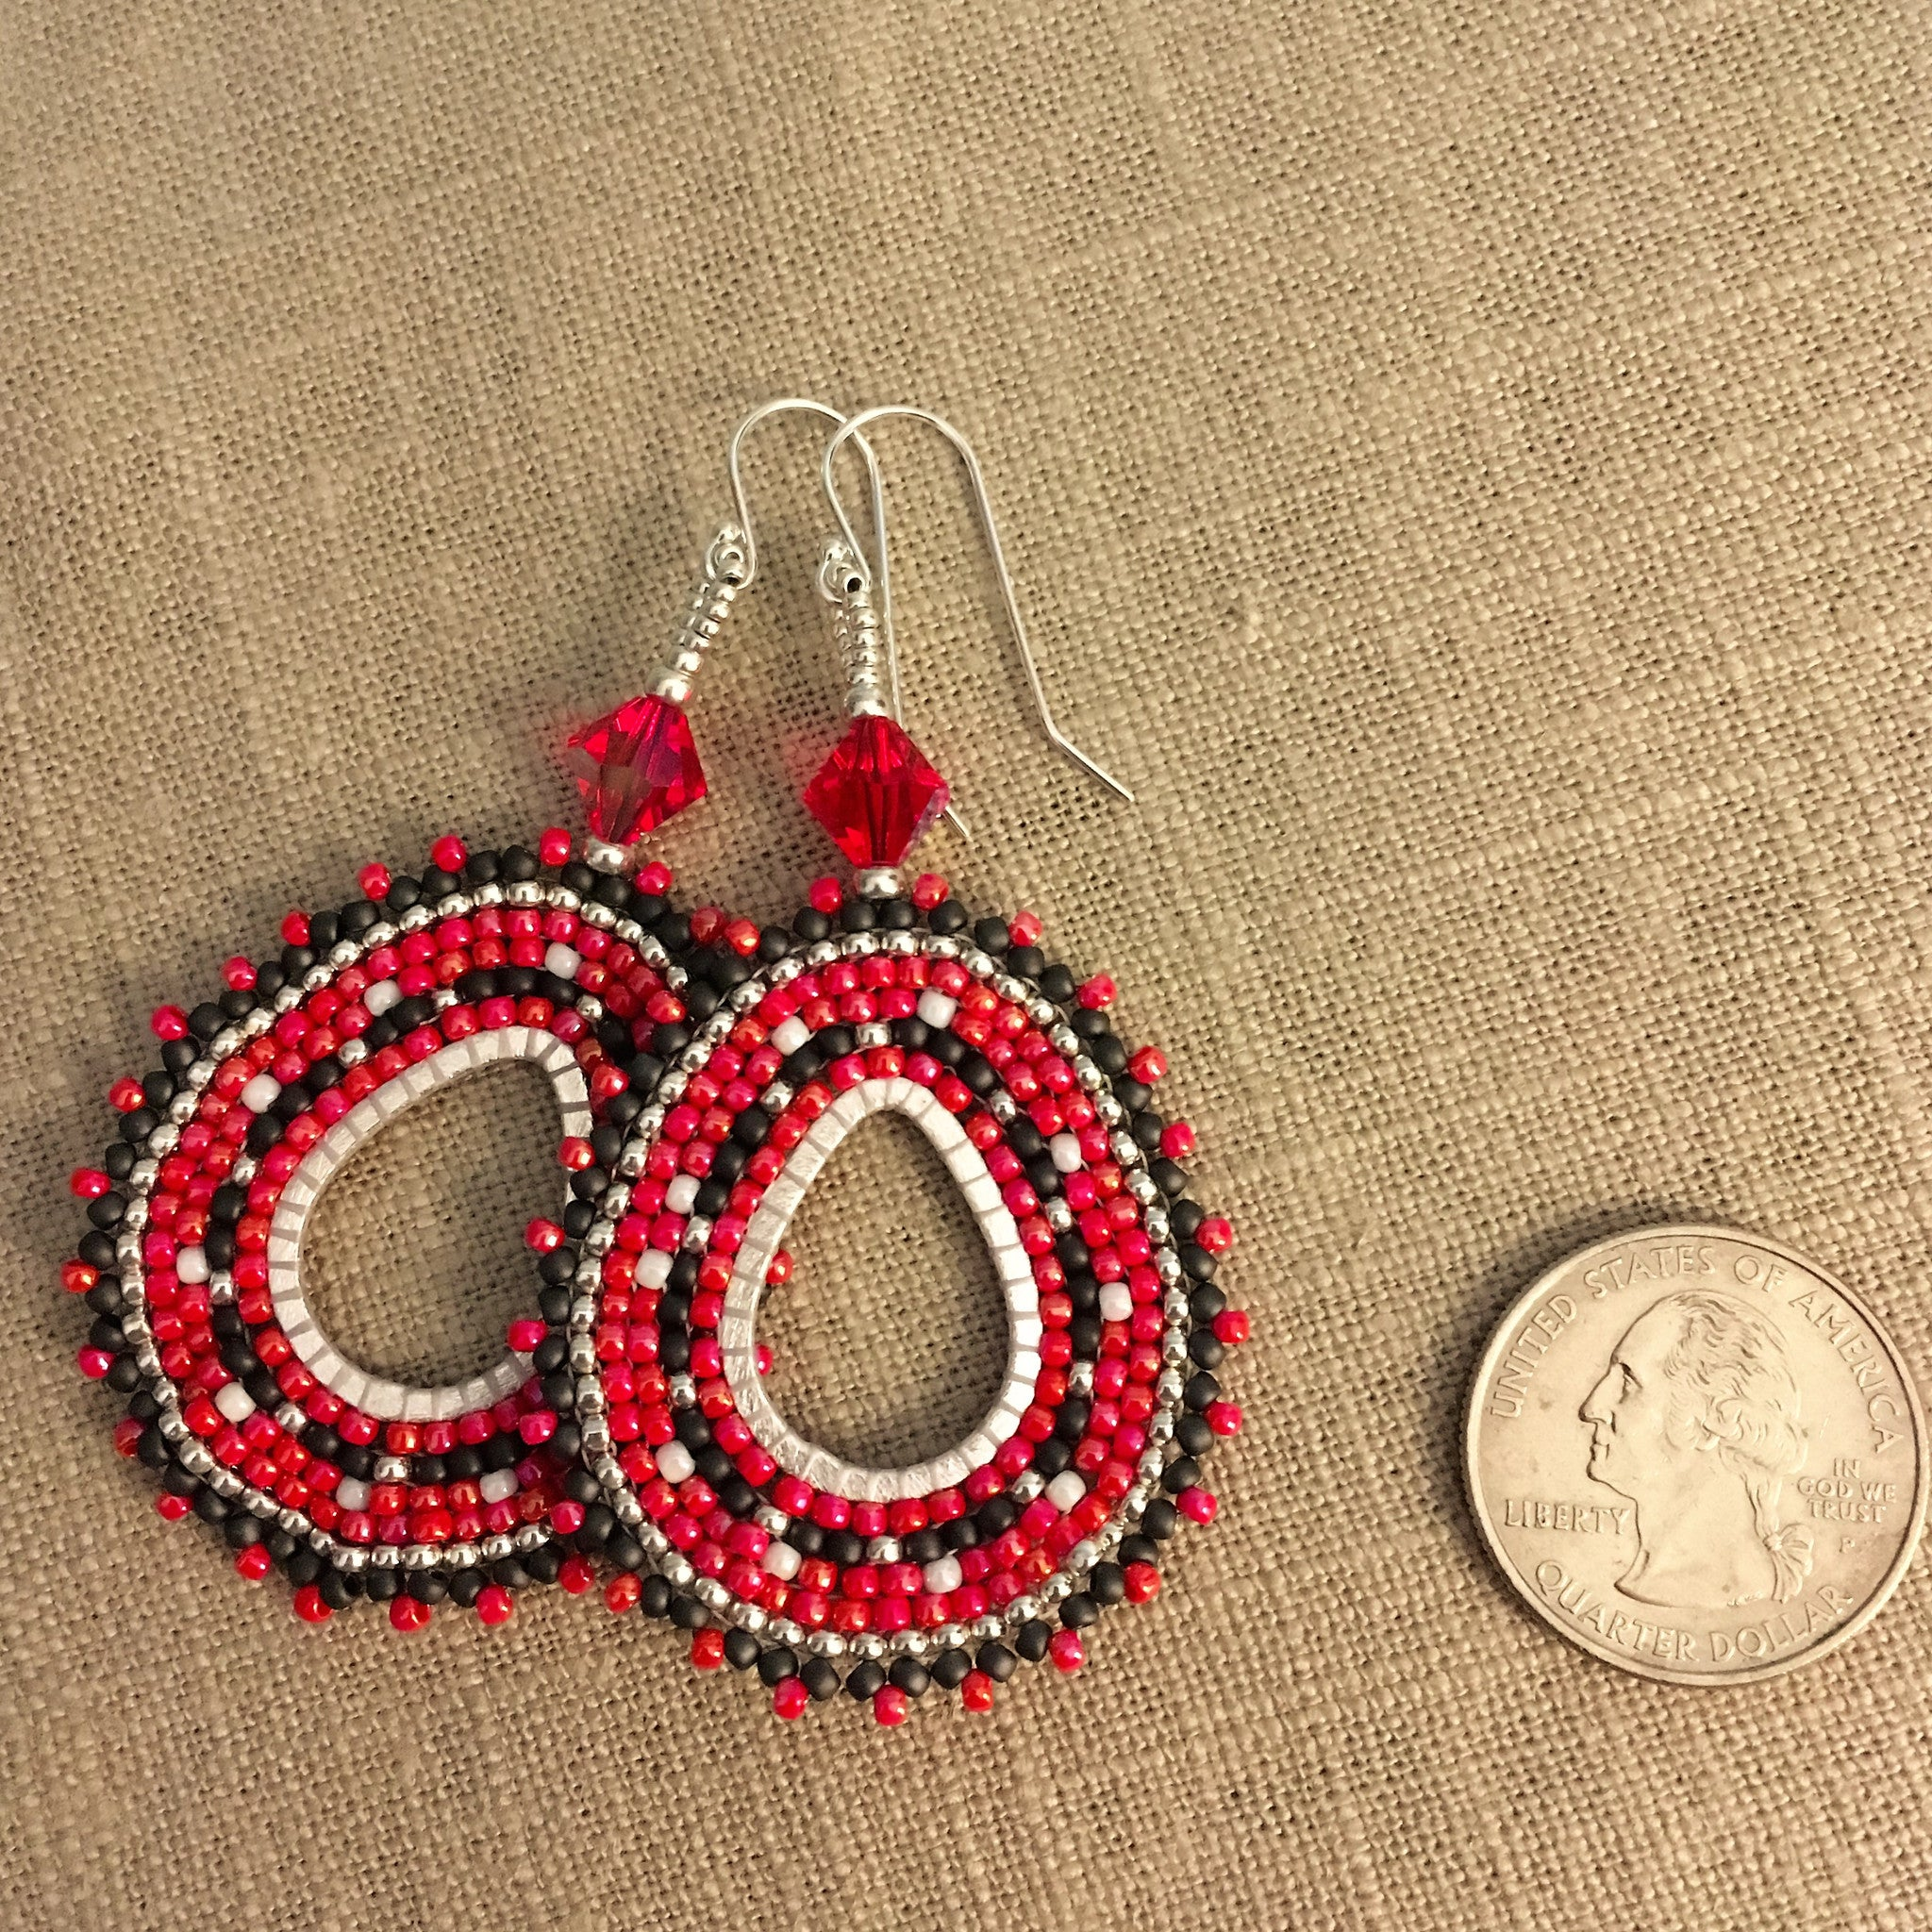 Red, Black, White and Silver Beaded Oval Hoop Earrings with Swarovski™ Crystals